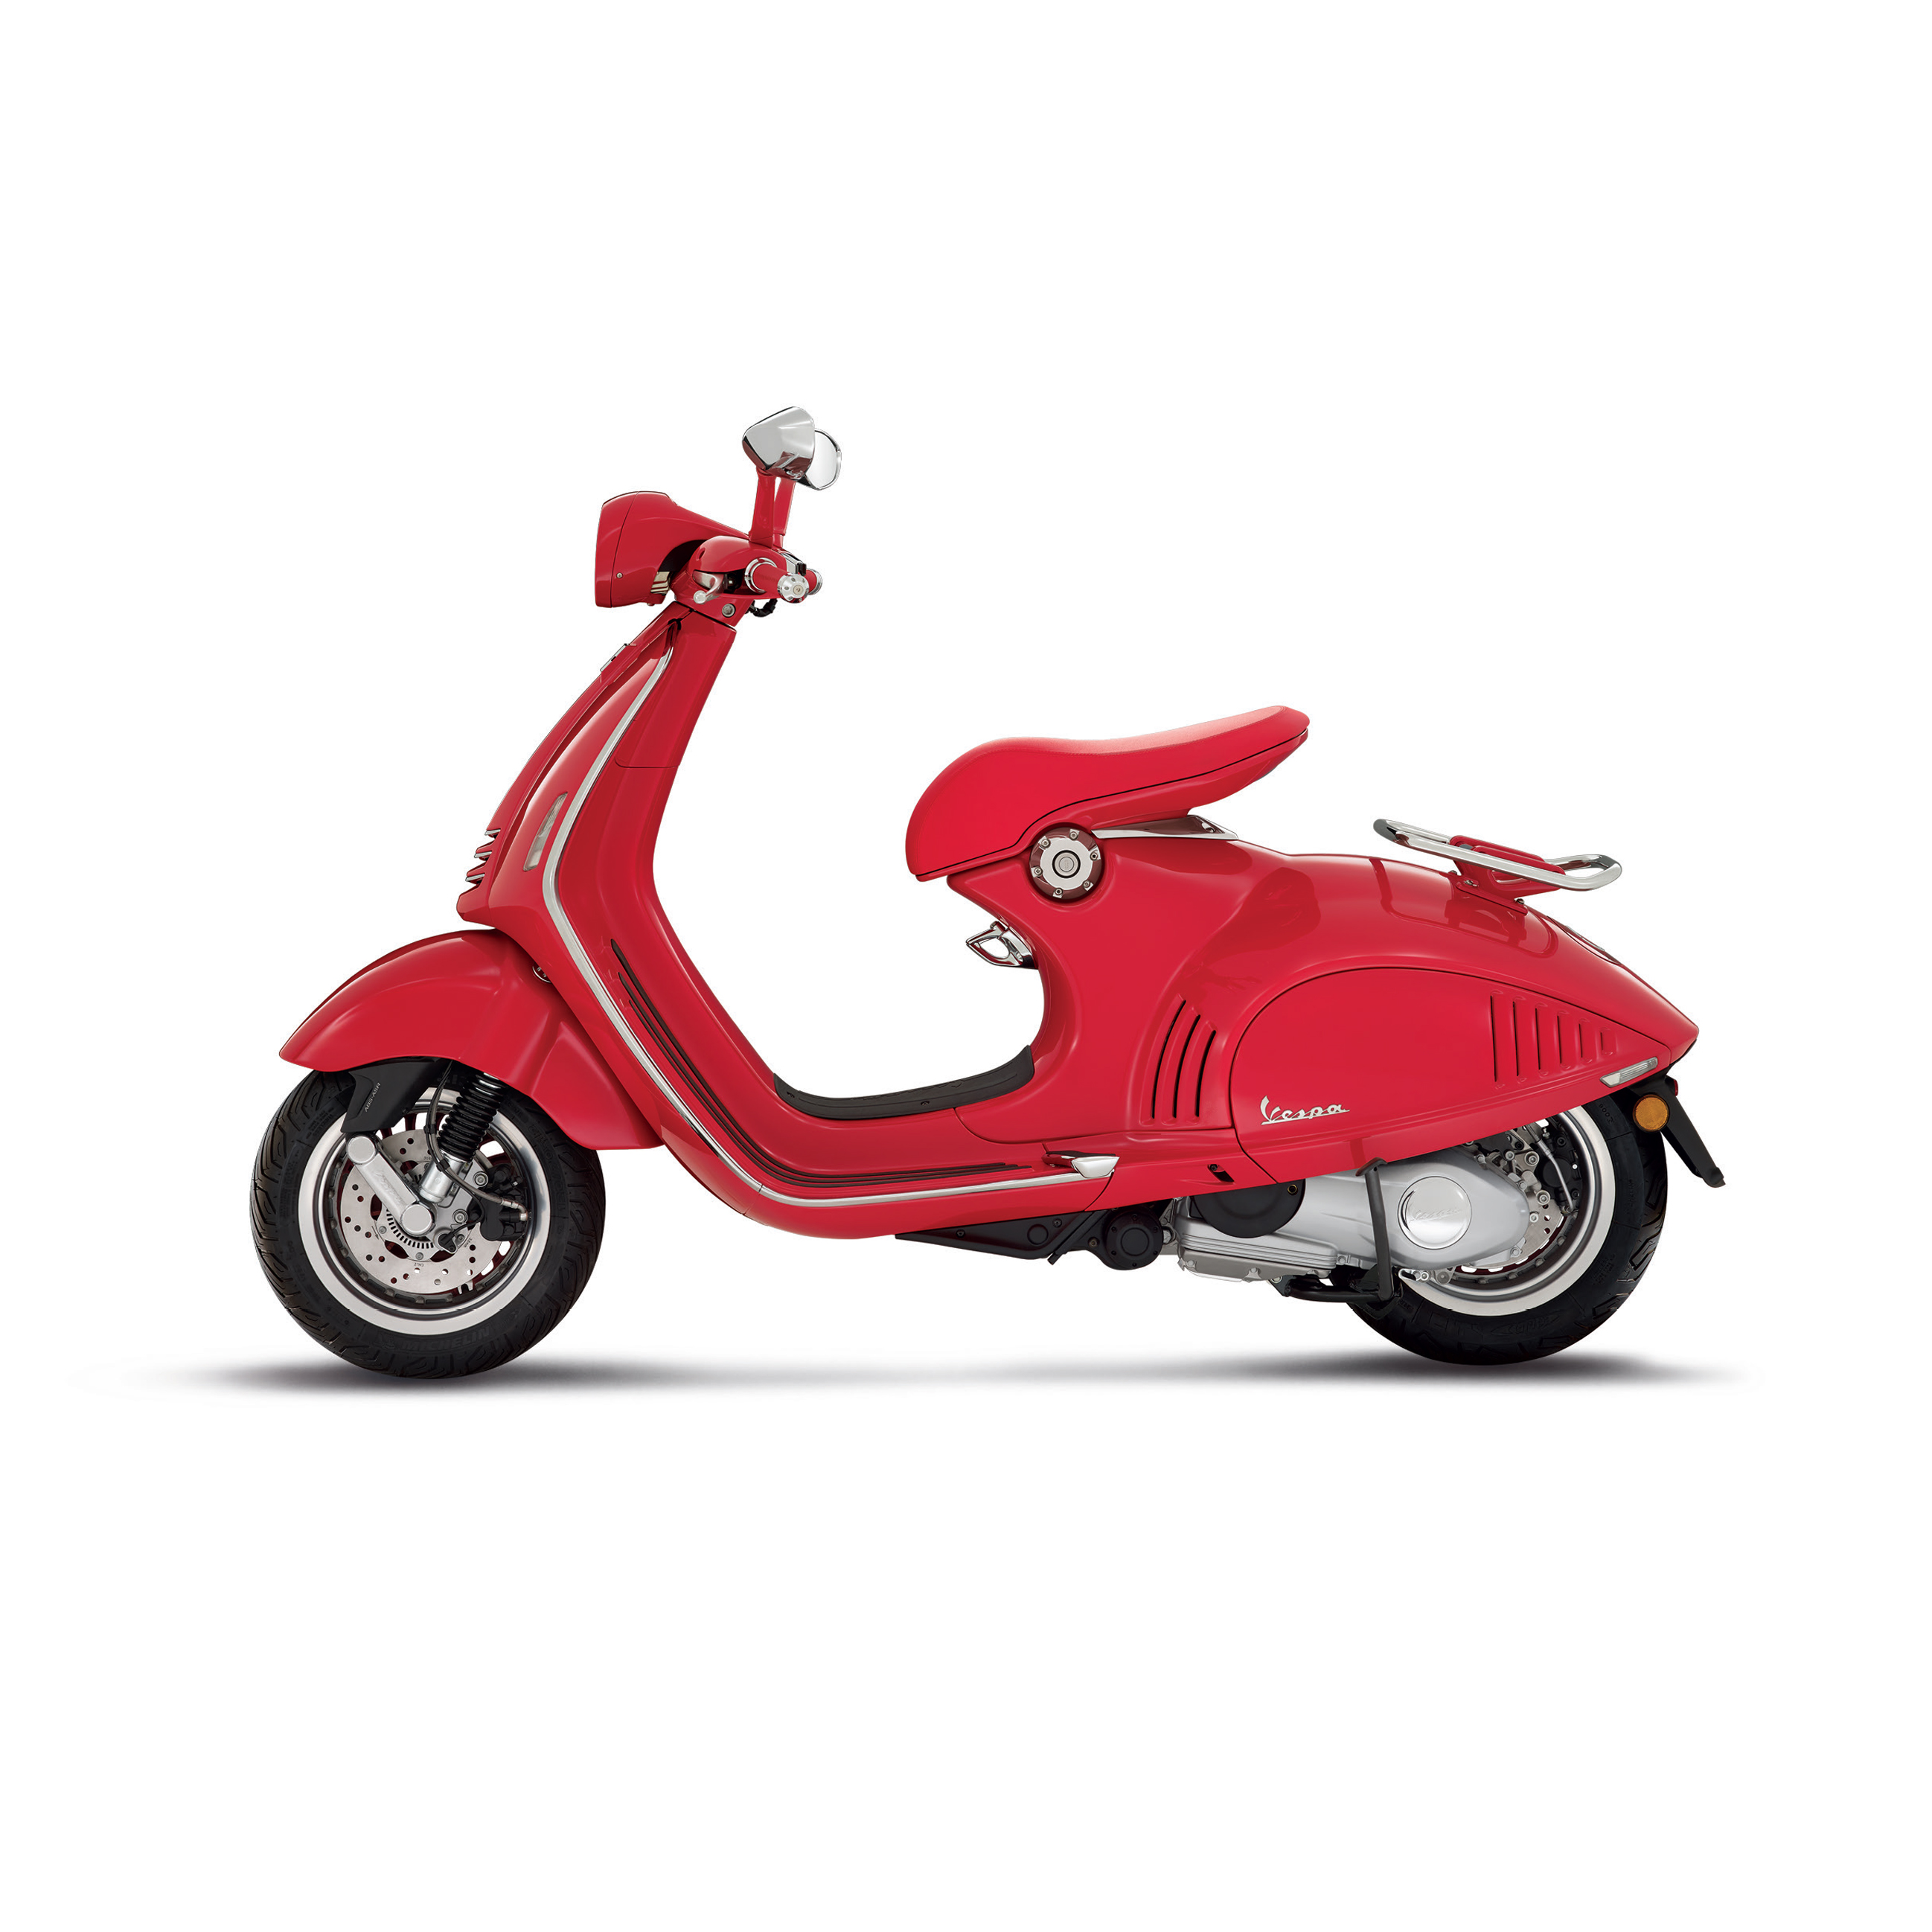 Naza Premira Introduces Vespa 946 (RED), Sprint Carbon and Sei ... on